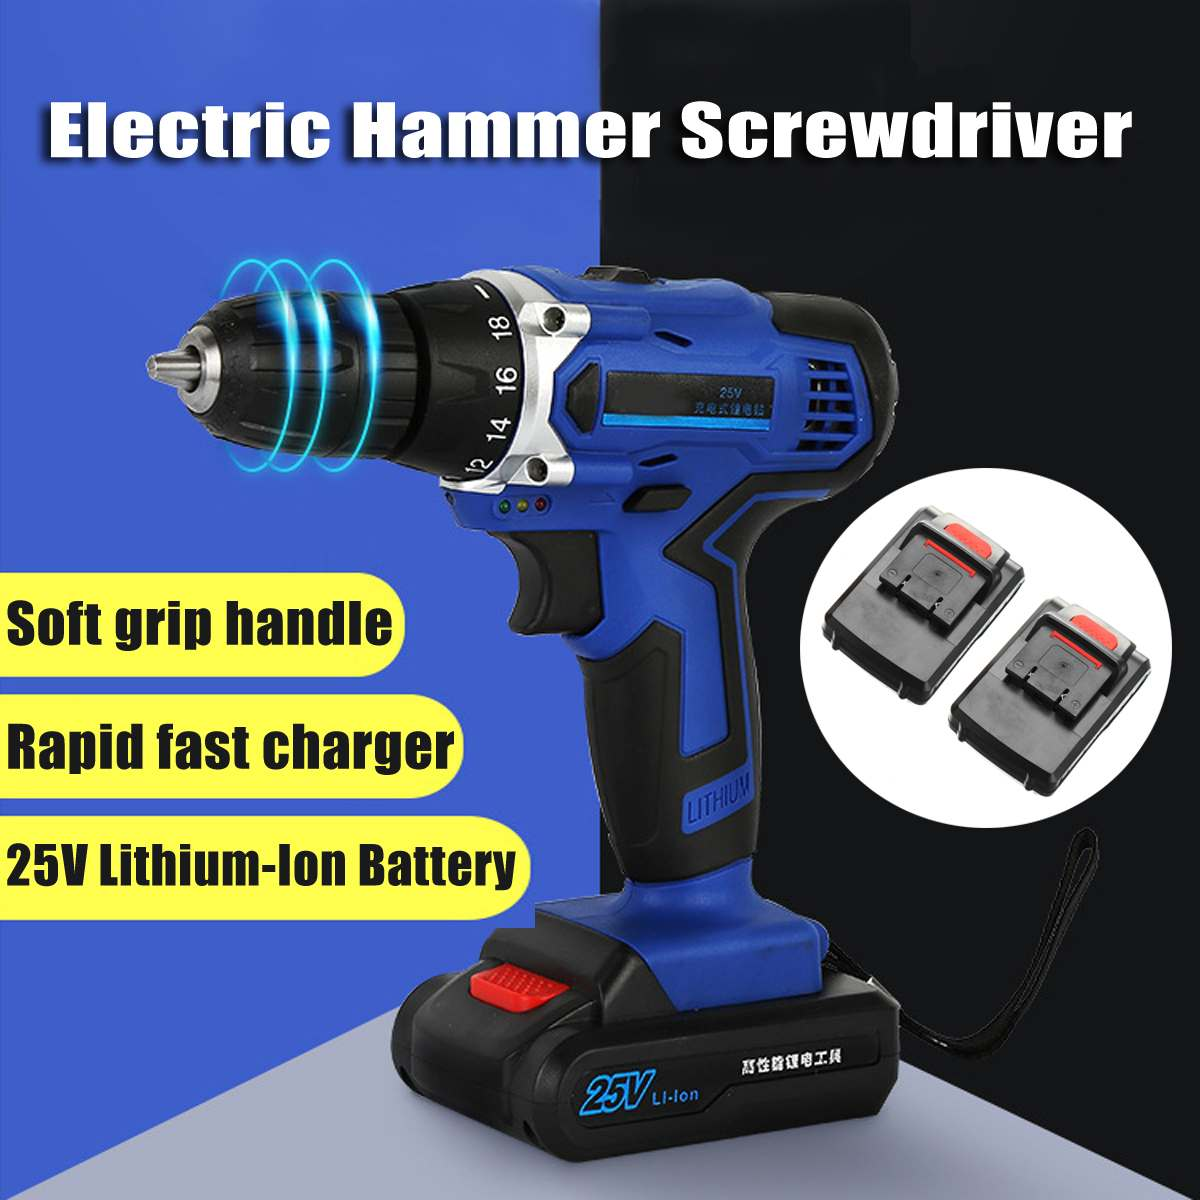 Rechargeable Cordless Drill Hammer Electric Screwdriver 25V Lithium-Ion Power Screwdriver With 2 Batteries 1 ChargerRechargeable Cordless Drill Hammer Electric Screwdriver 25V Lithium-Ion Power Screwdriver With 2 Batteries 1 Charger